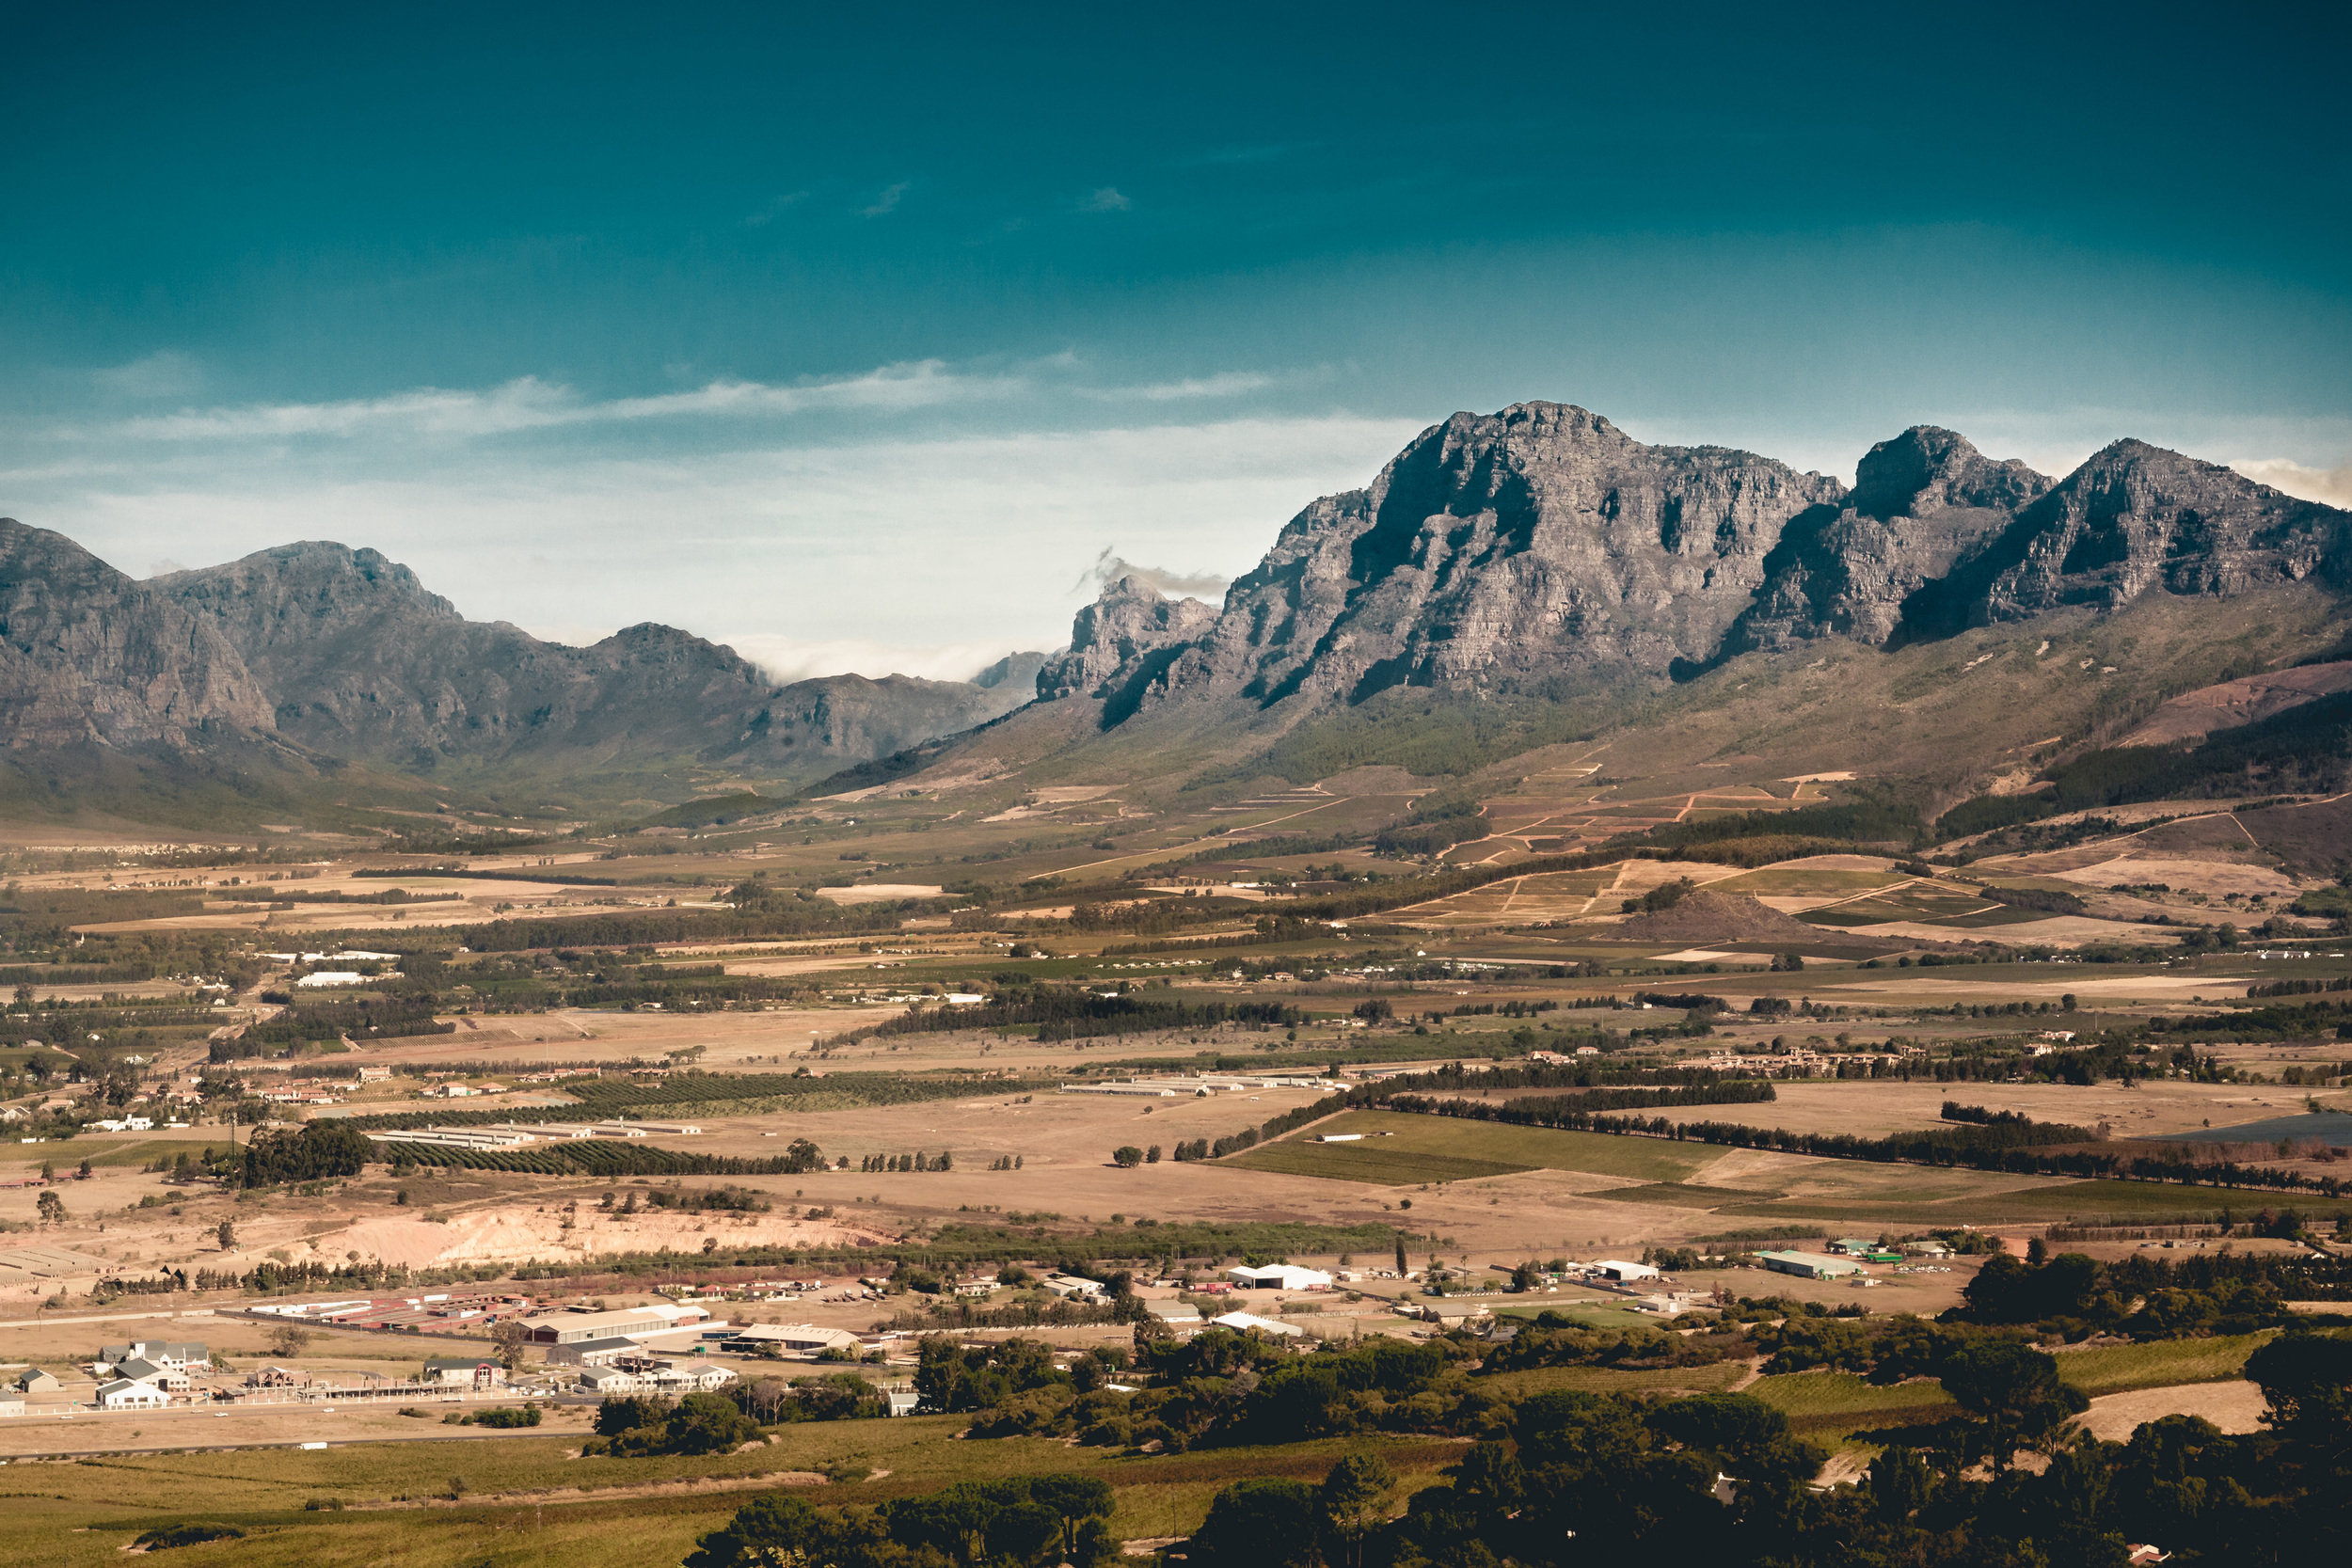 Hottentots-Holland Mountain Range viewed from the Afrikaans Language Monument in Paarl, Cape Town, South Africa